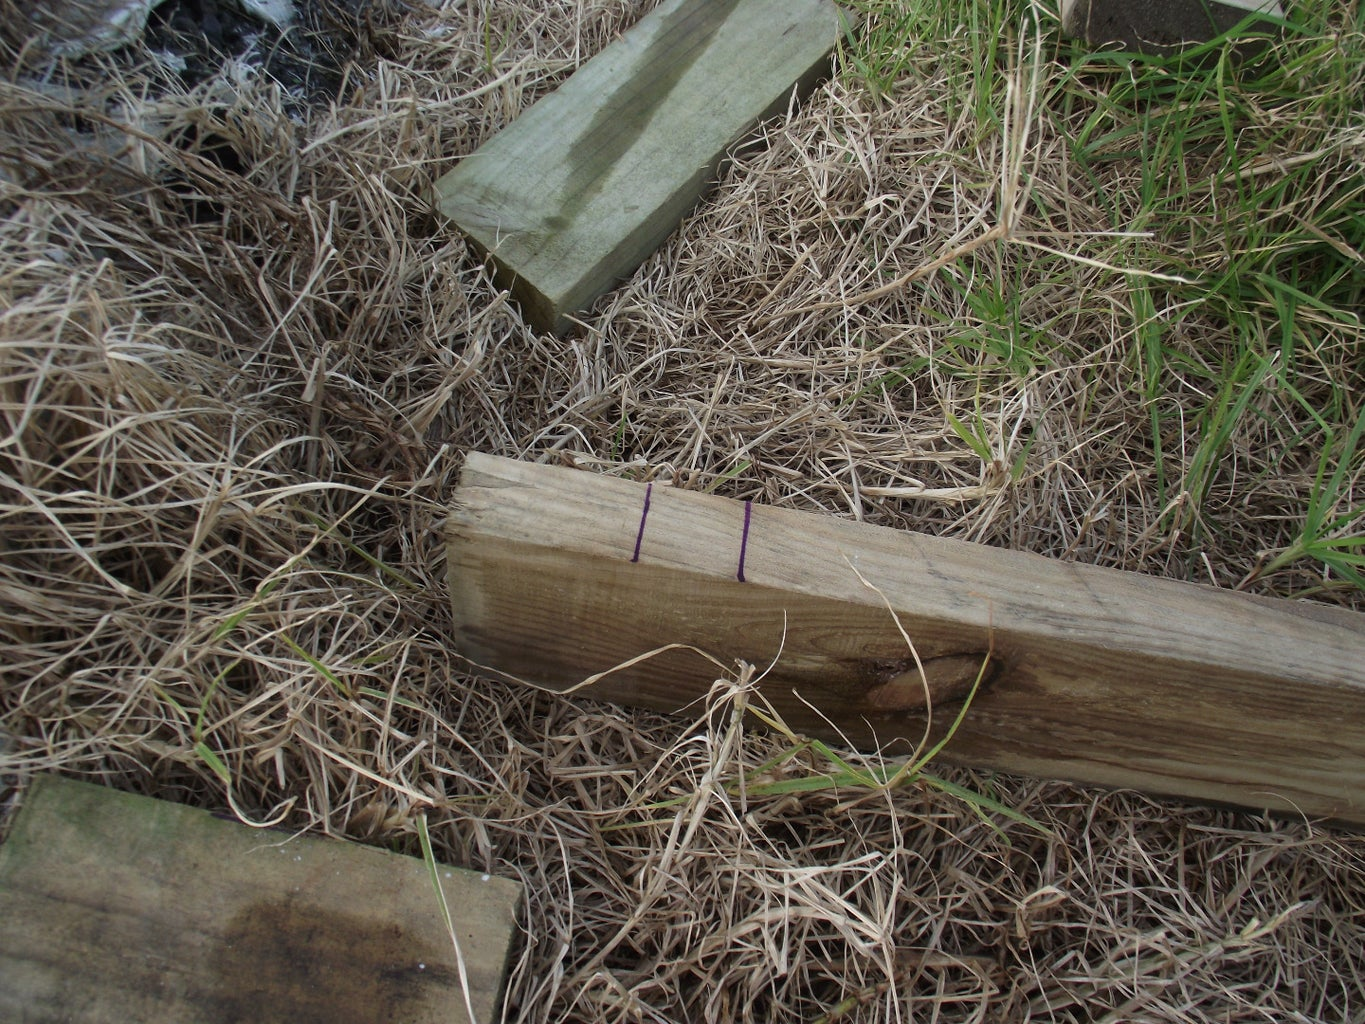 Notching the Timbers